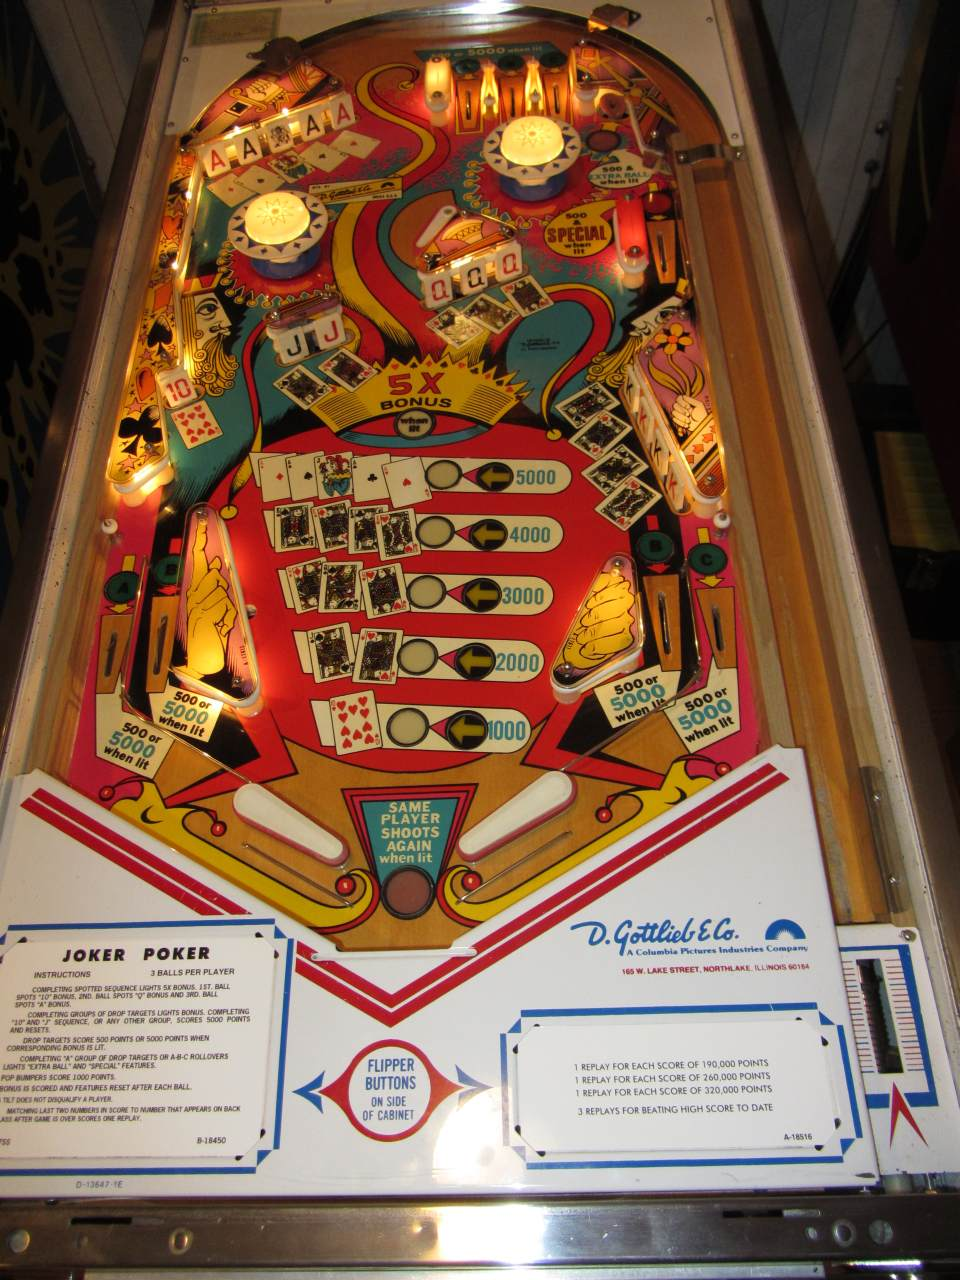 Gottlieb Joker Poker Pinball Machine #1 - Pinballmania LLC